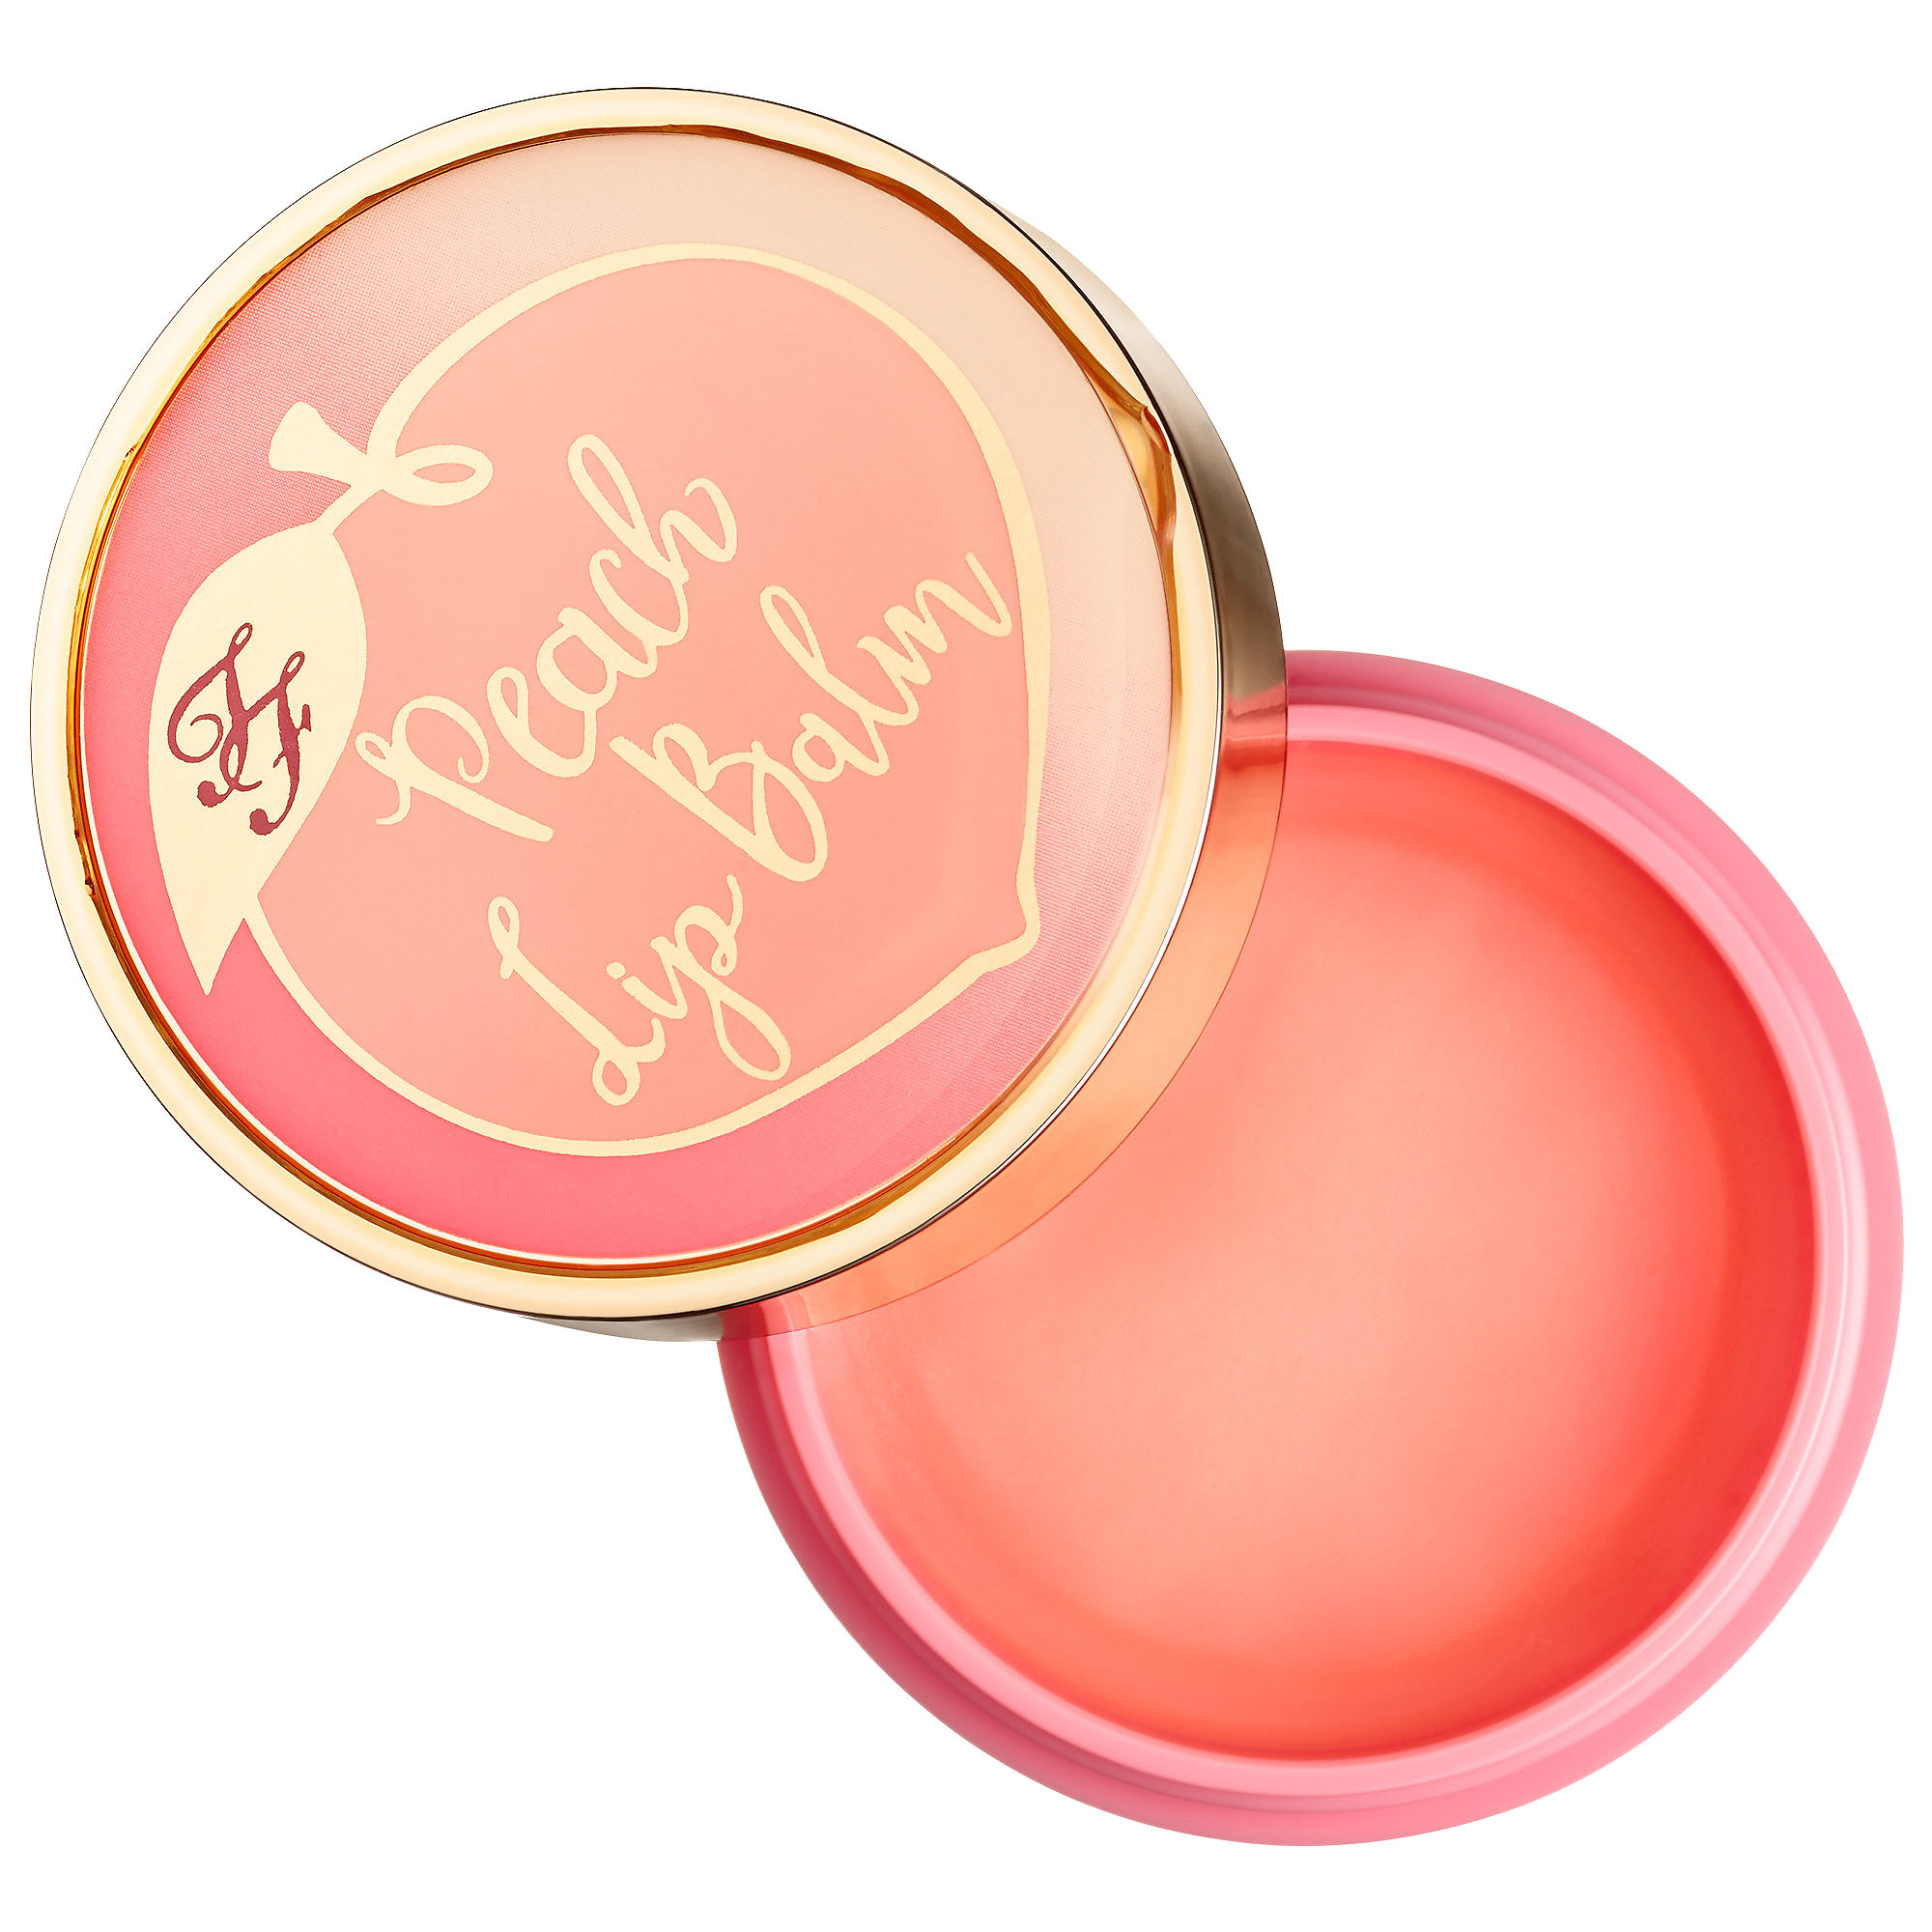 Toofaced - Peach Mega Moisture Lip Balm - Peaches and Cream Collection